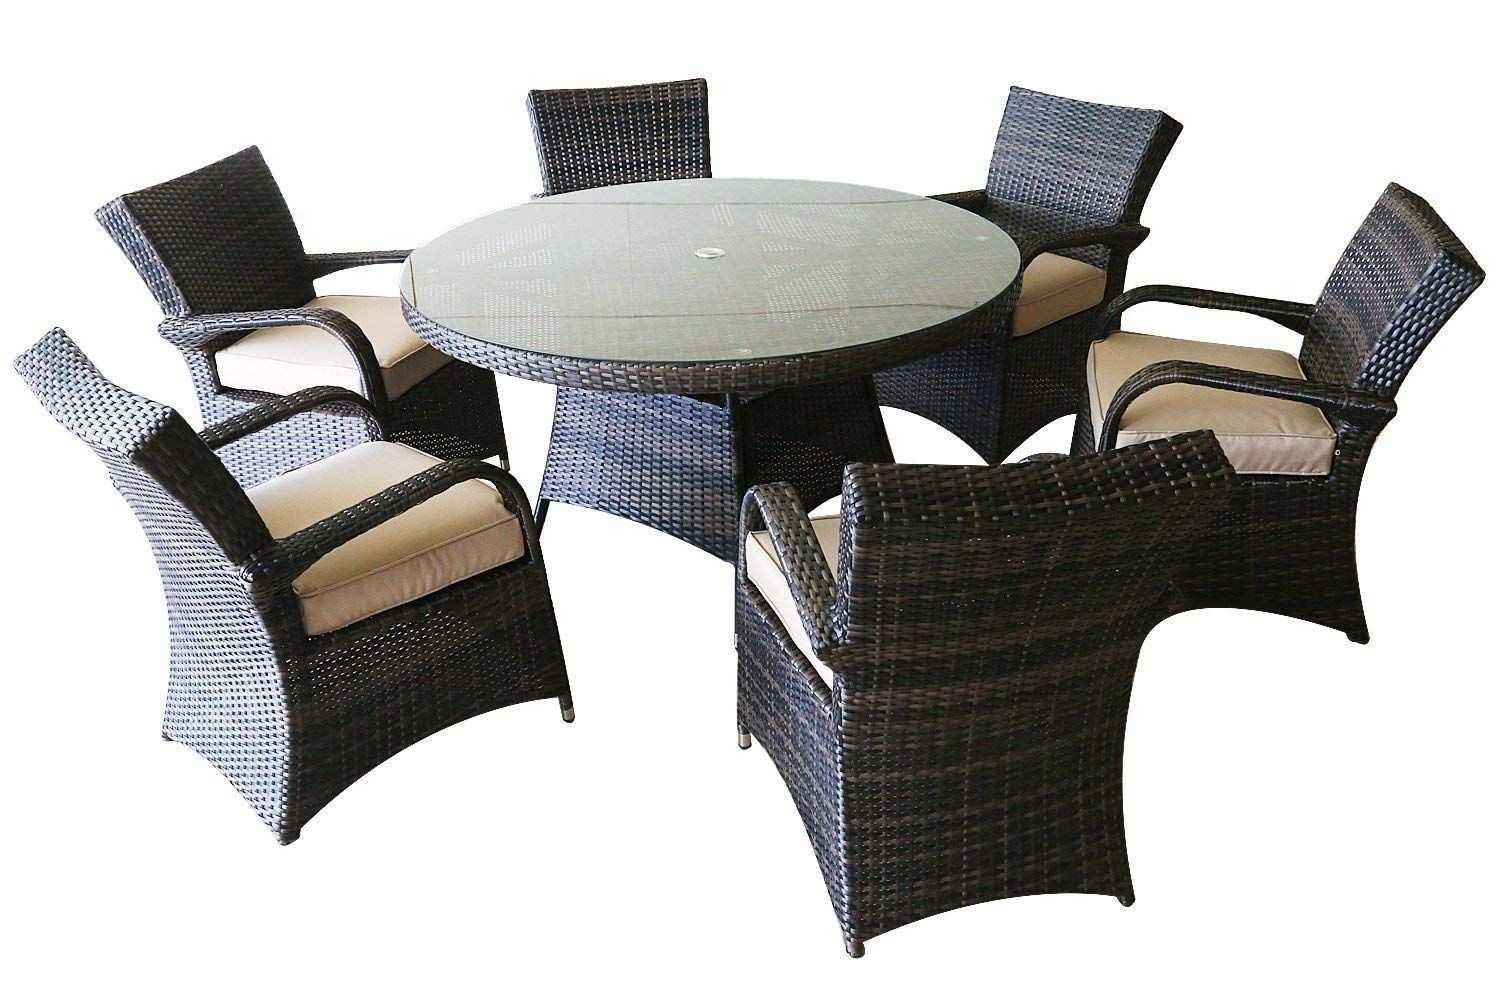 Patioption 7 Pieces 6 Seats Outdoor Patio Furniture Dining Table